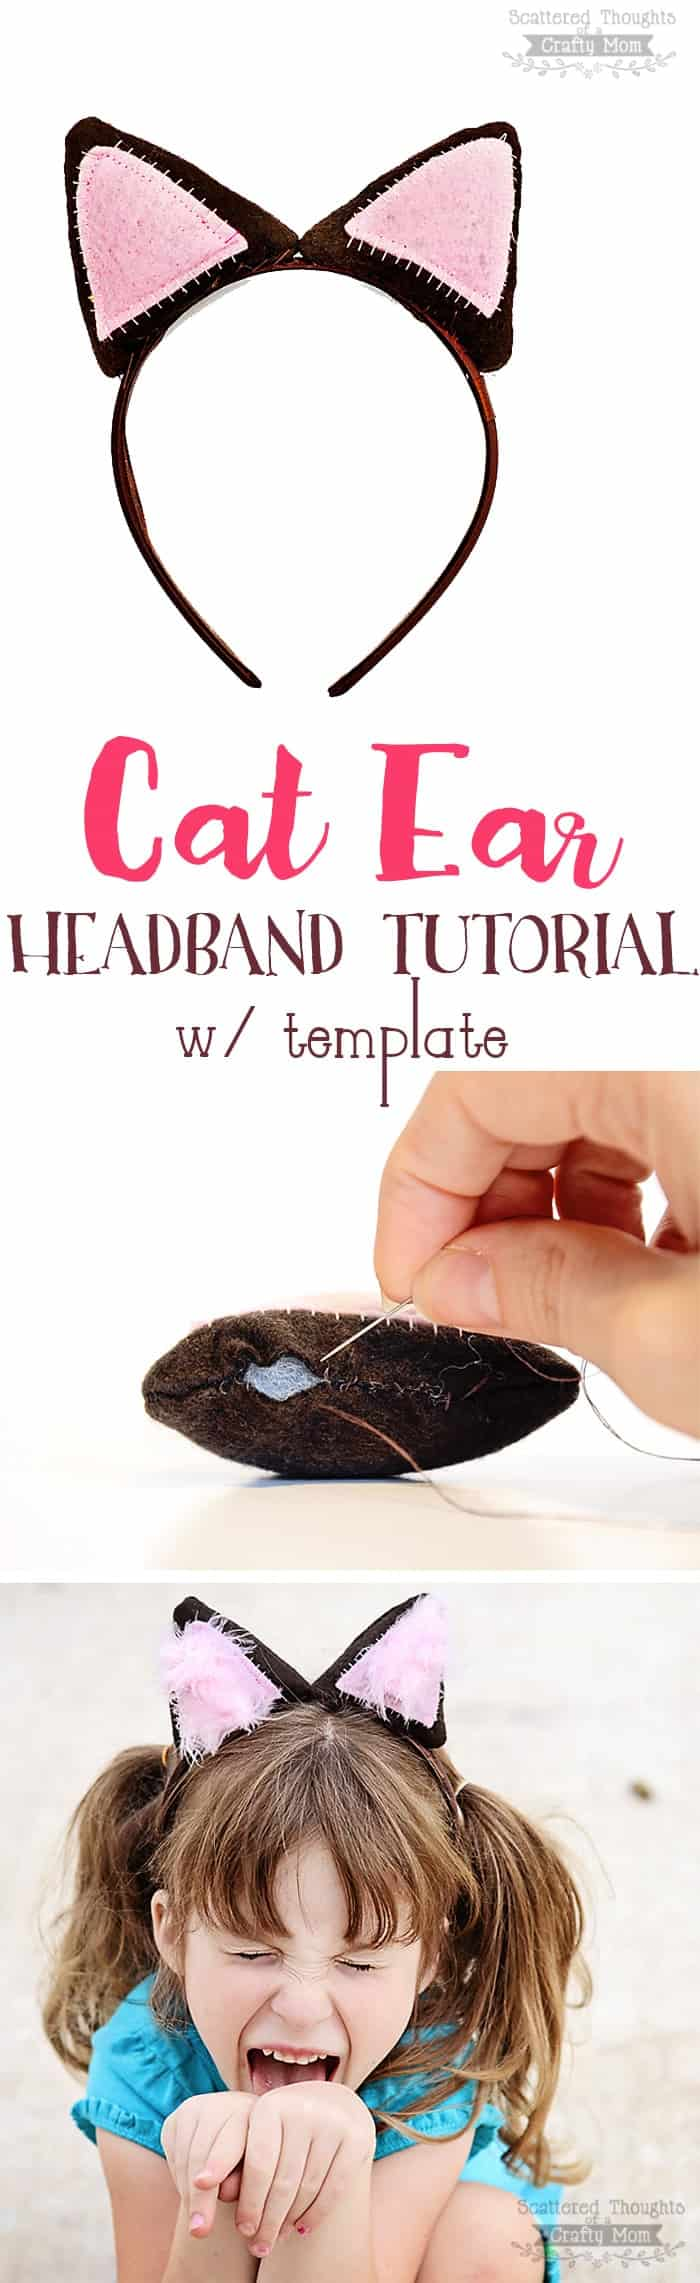 Diy Cat Ear Headband Tutorial W Template Scattered Thoughts Of A Crafty Mom